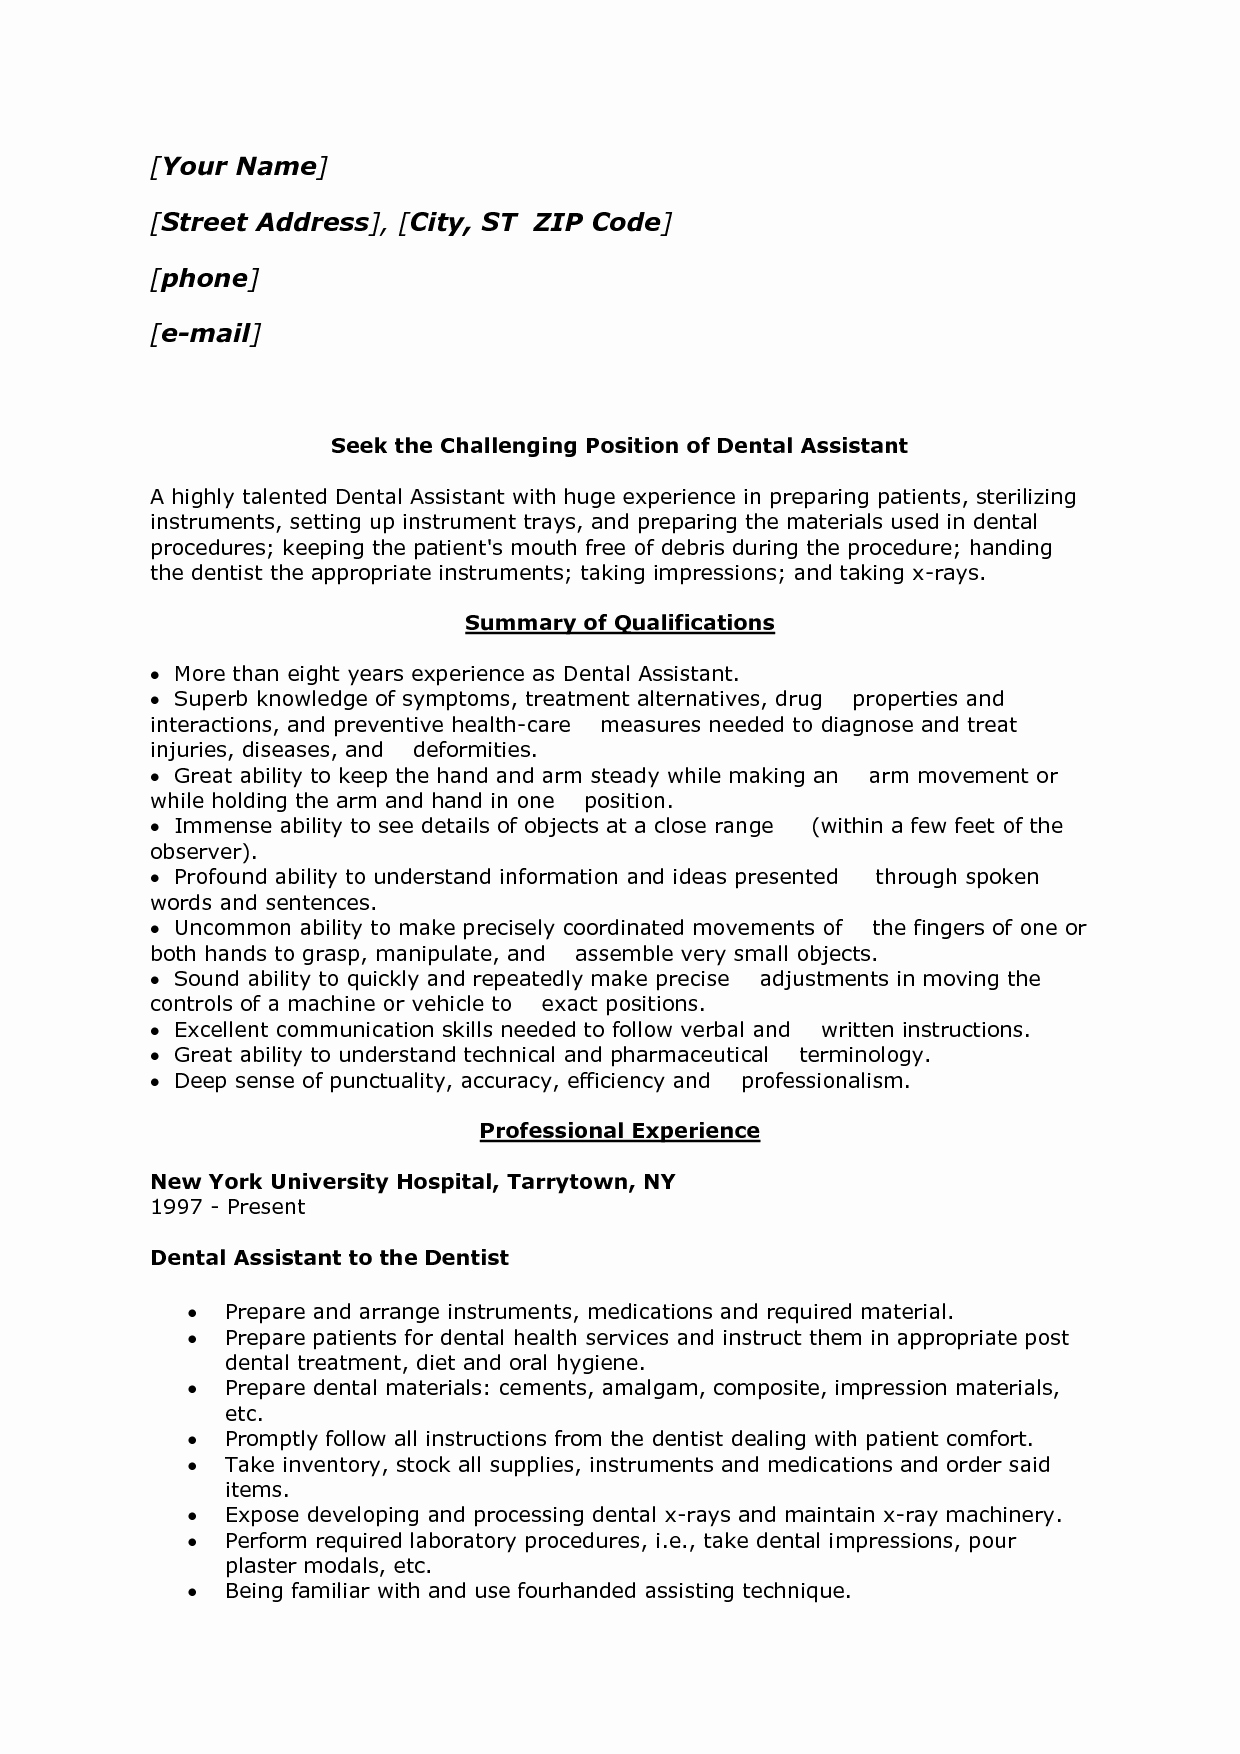 11 best dental assistant resume